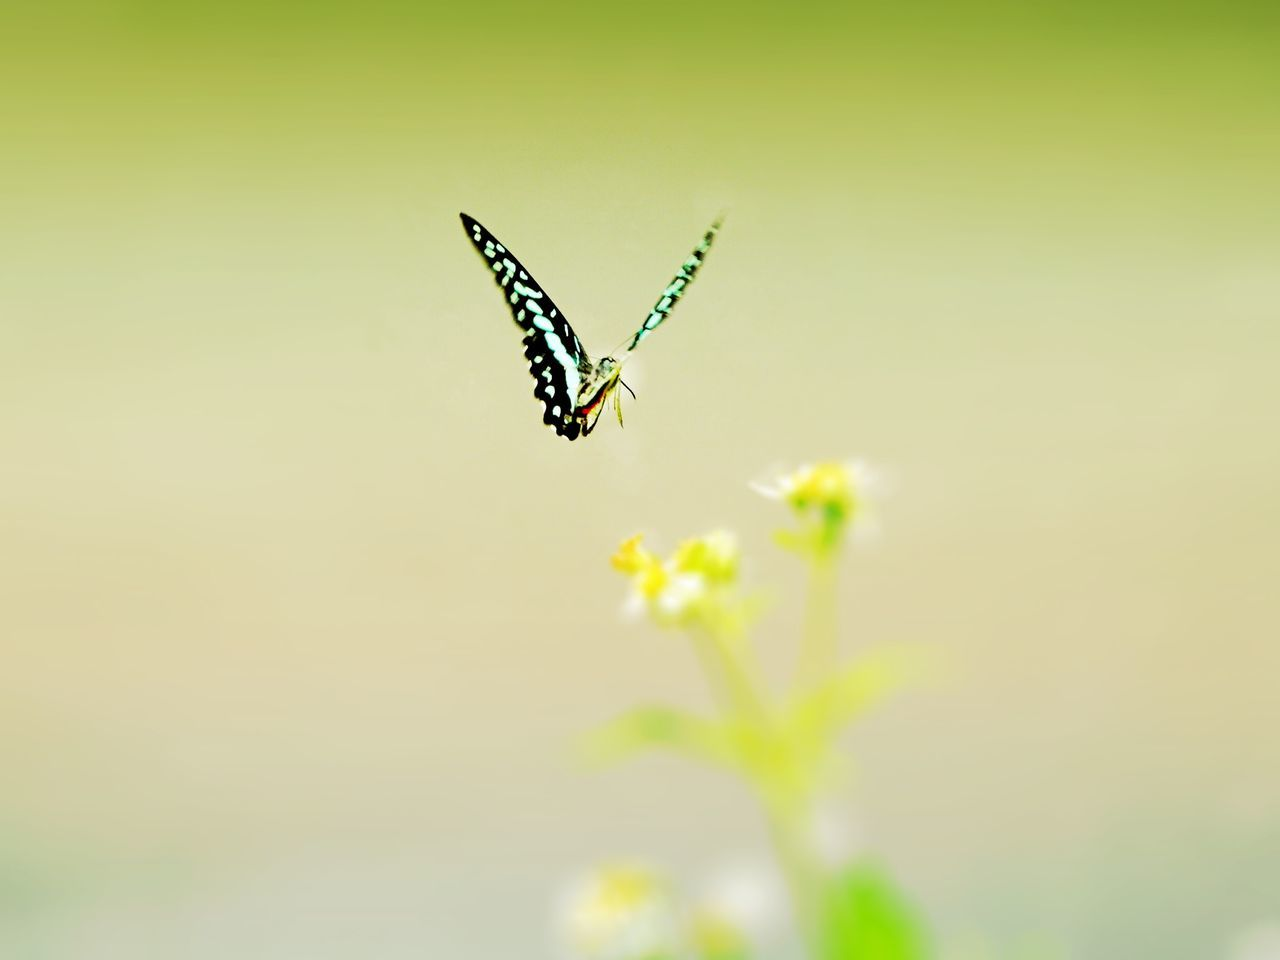 Close-Up Of Butterfly Hovering Over Flower